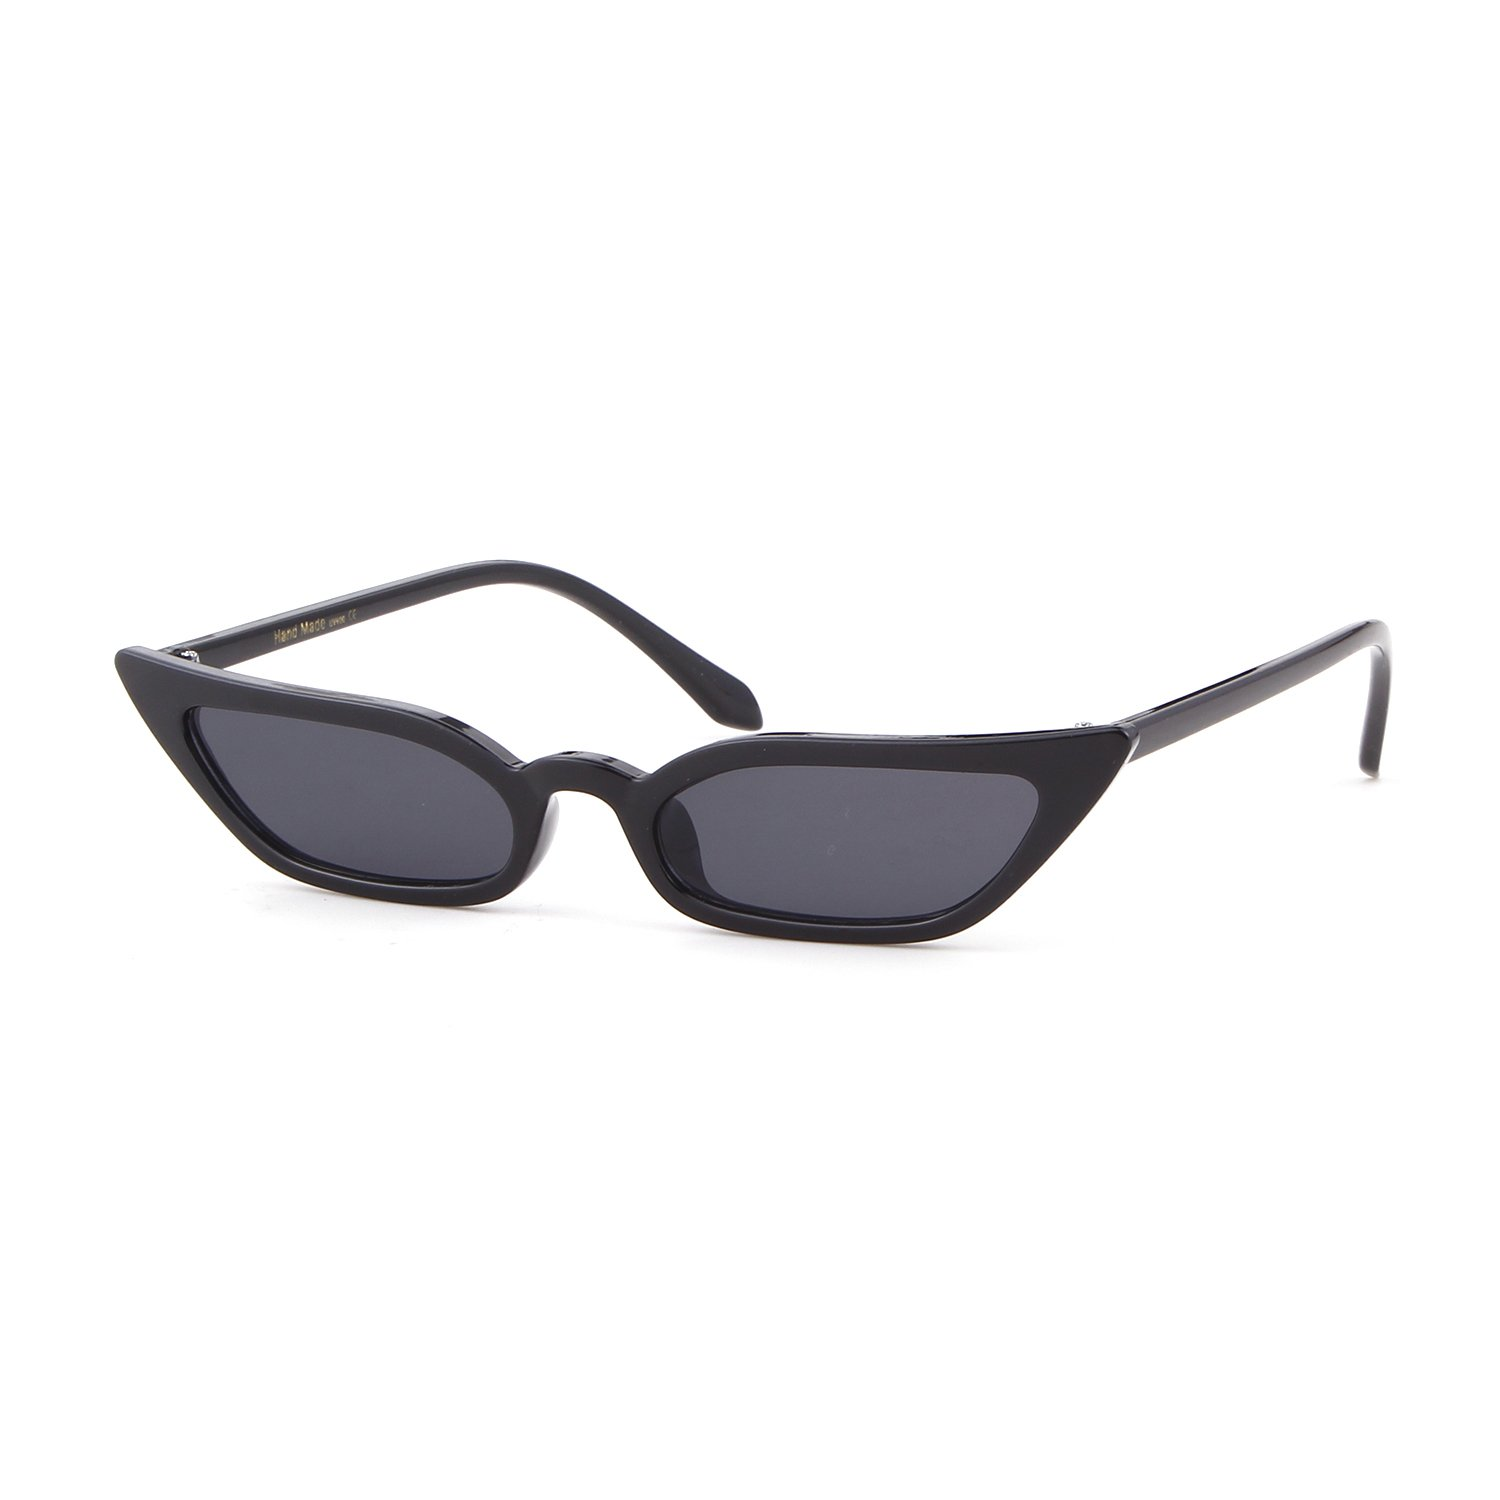 d675dbe9cd Amazon.com  Small Skinny Cat Eye Sunglasses Vintage Sex Square Frame Clout  Goggles for Women (Black Gray